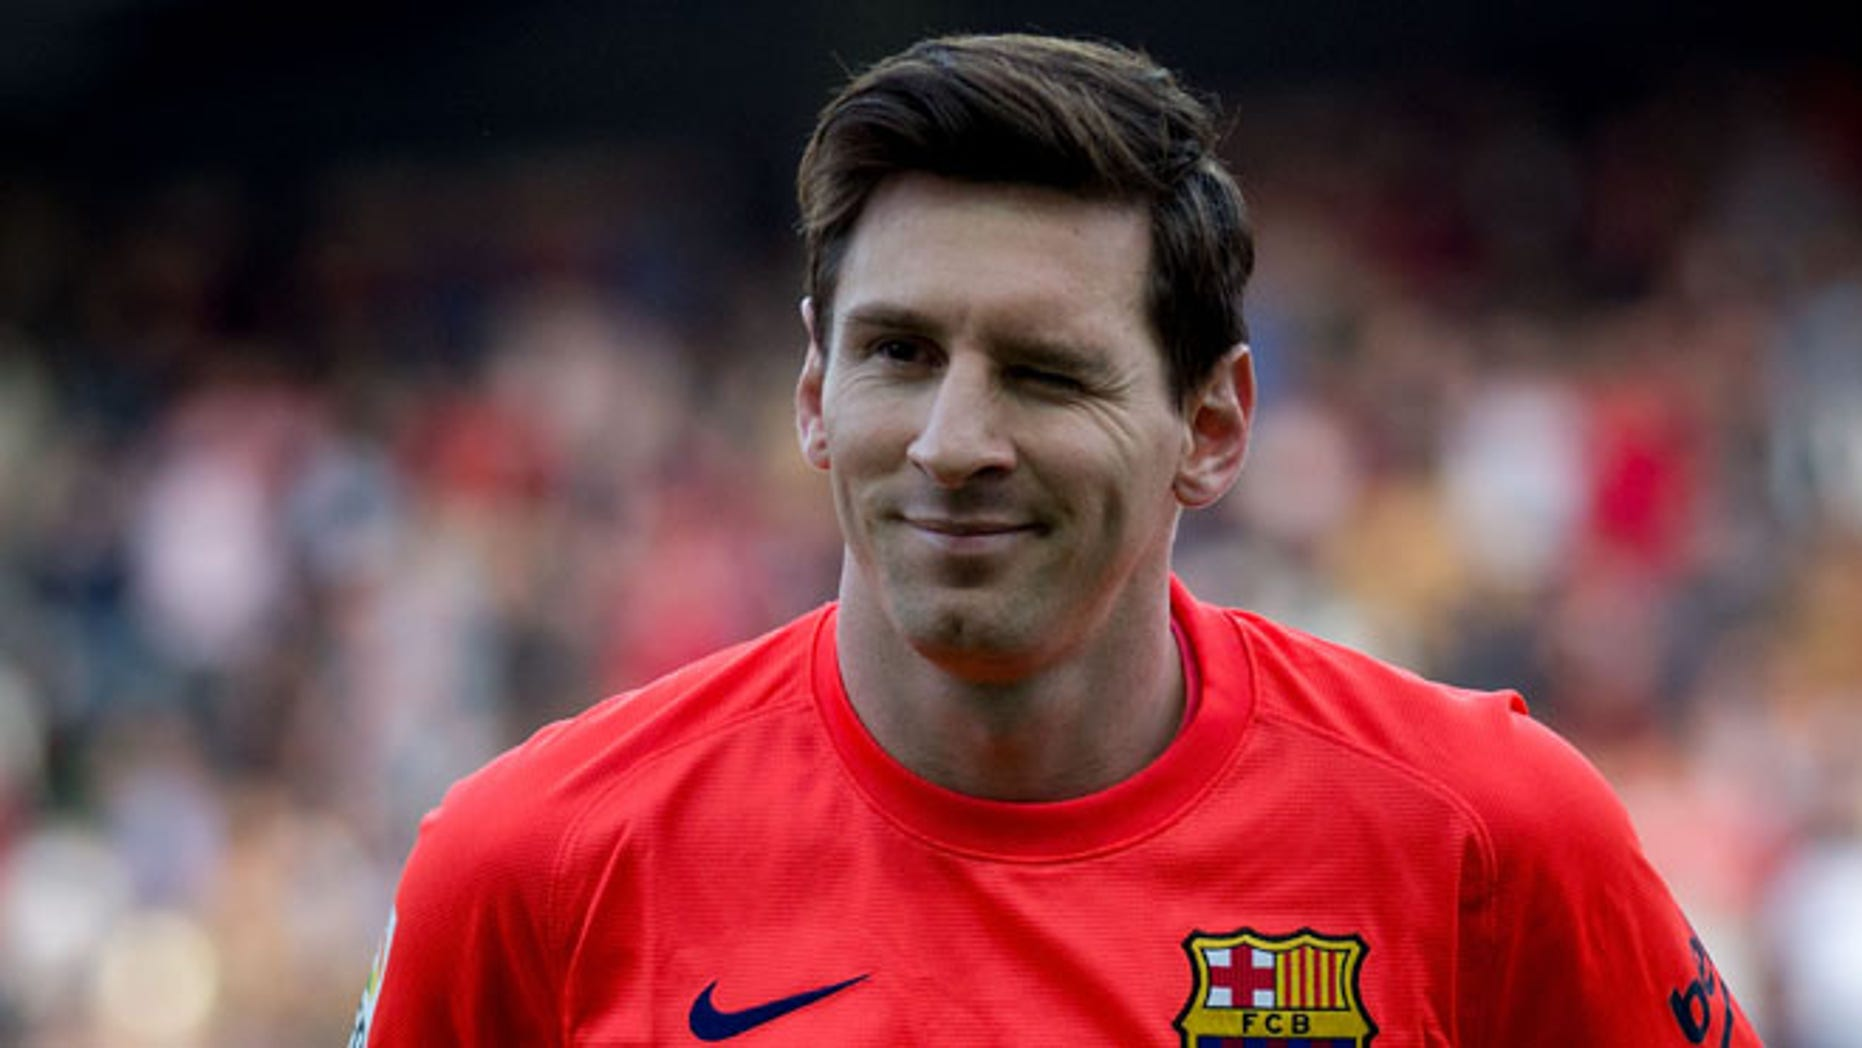 SEVILLE, SPAIN - APRIL 11: Lionel Messi of FC Barcelona wrinkres his eye prior to start the La Liga match between Sevilla FC and FC Barcelona at Estadio Ramon Sanchez Pizjuan on April 11, 2015 in Seville, Spain.  (Photo by Gonzalo Arroyo Moreno/Getty Images)